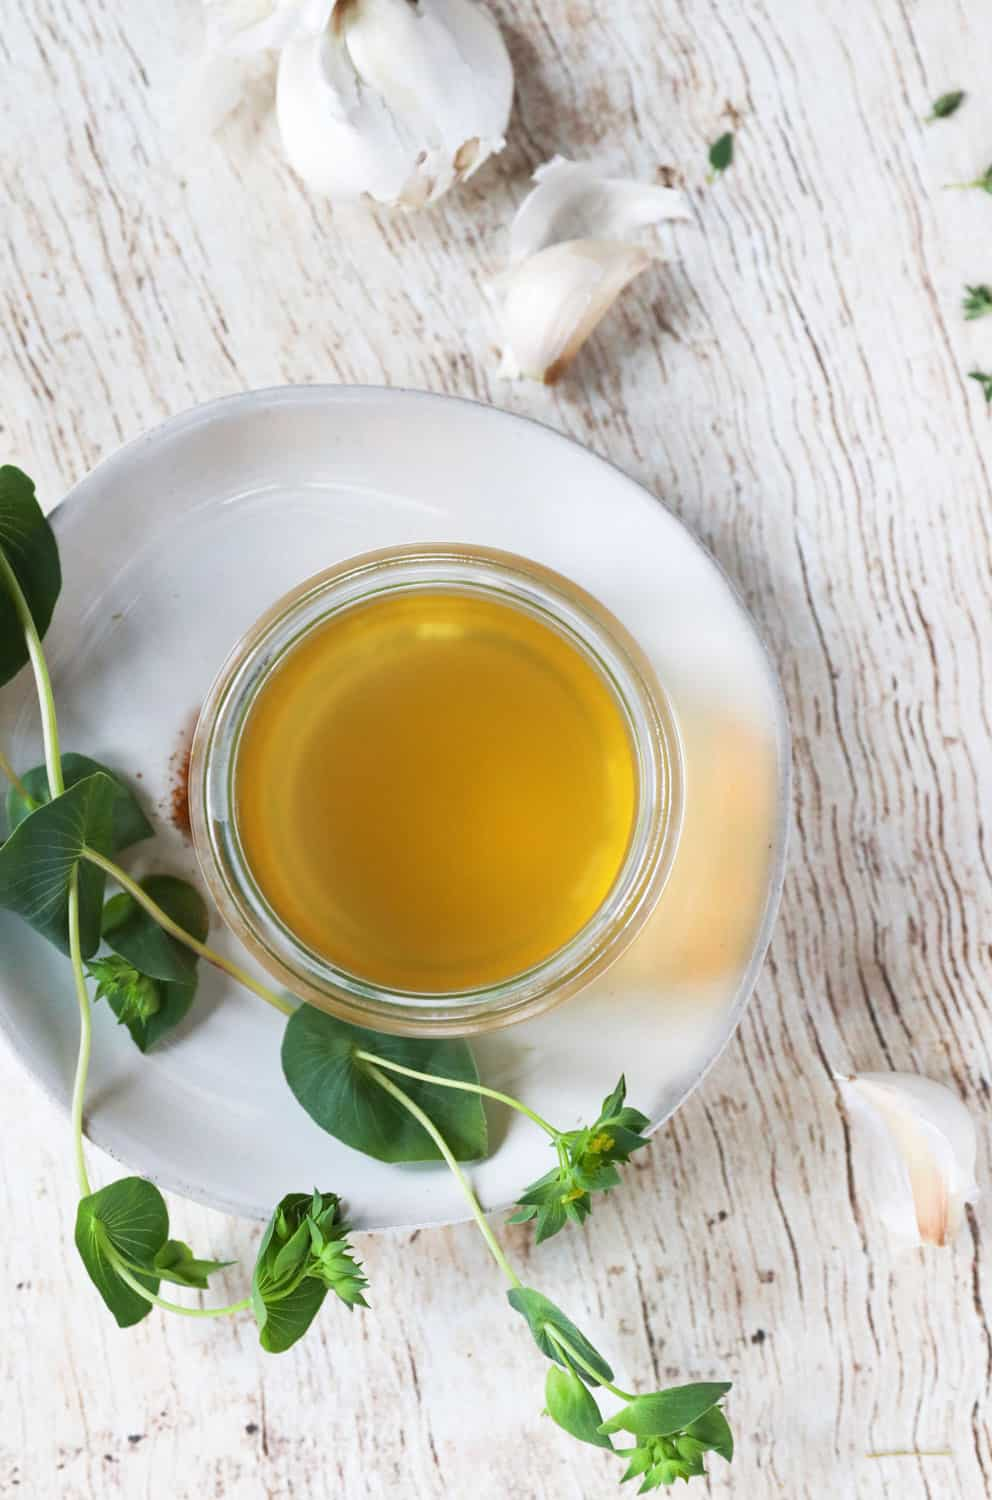 This Herbal Elixir Is a Natural Sore Throat Remedy